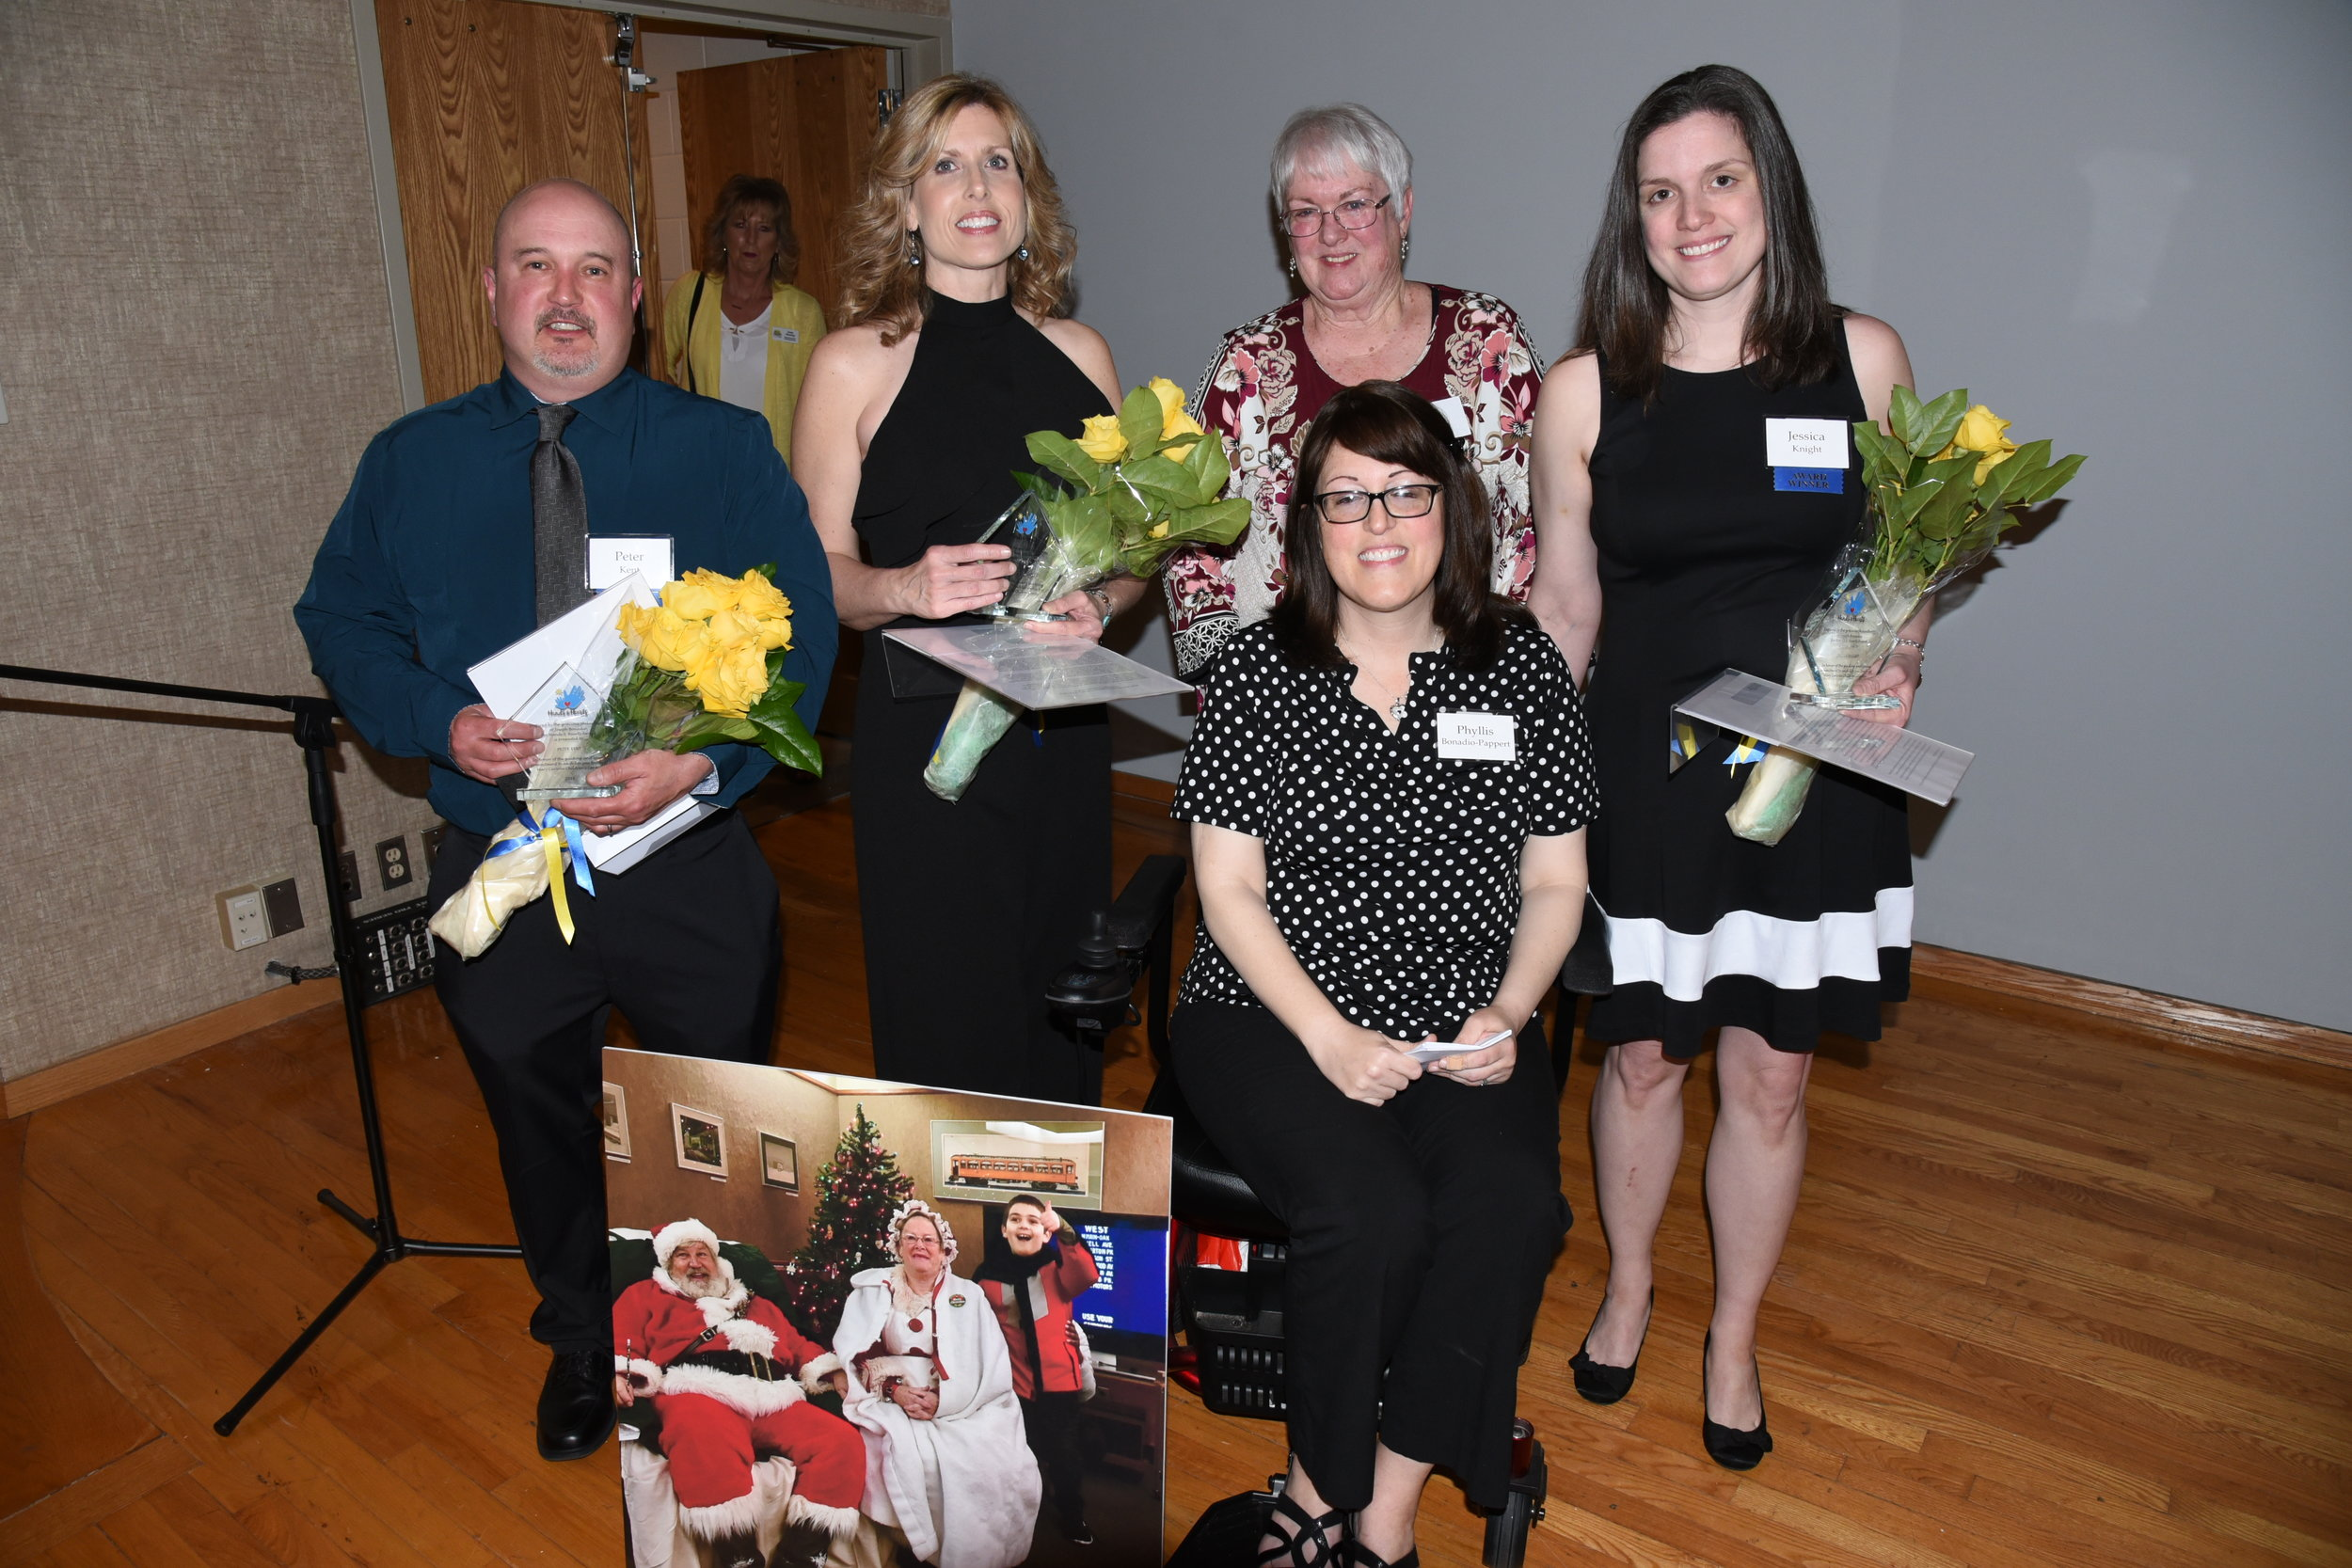 Phyllis Bonadio-Pappert and her Mom, Ann Bonadio, celebrate with 2019 Hands and Hearts Award Winners                                                                          (l-r) Peter Kent, Catherine Welch and Jessica Knight.